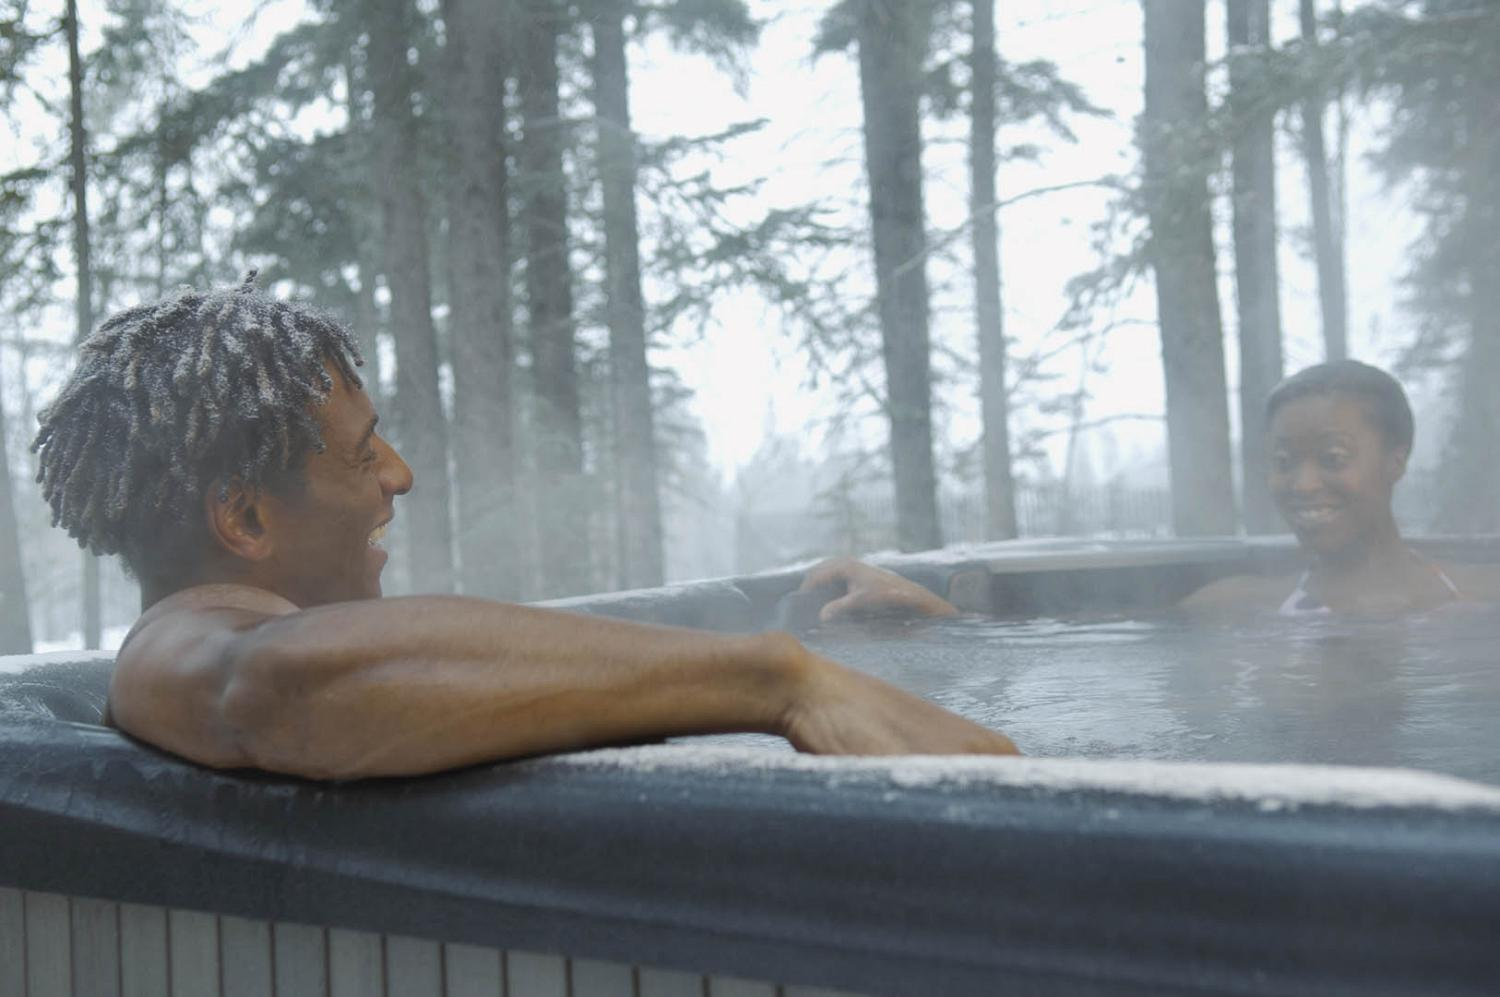 Smiling couple in outdoor hot tub in winter